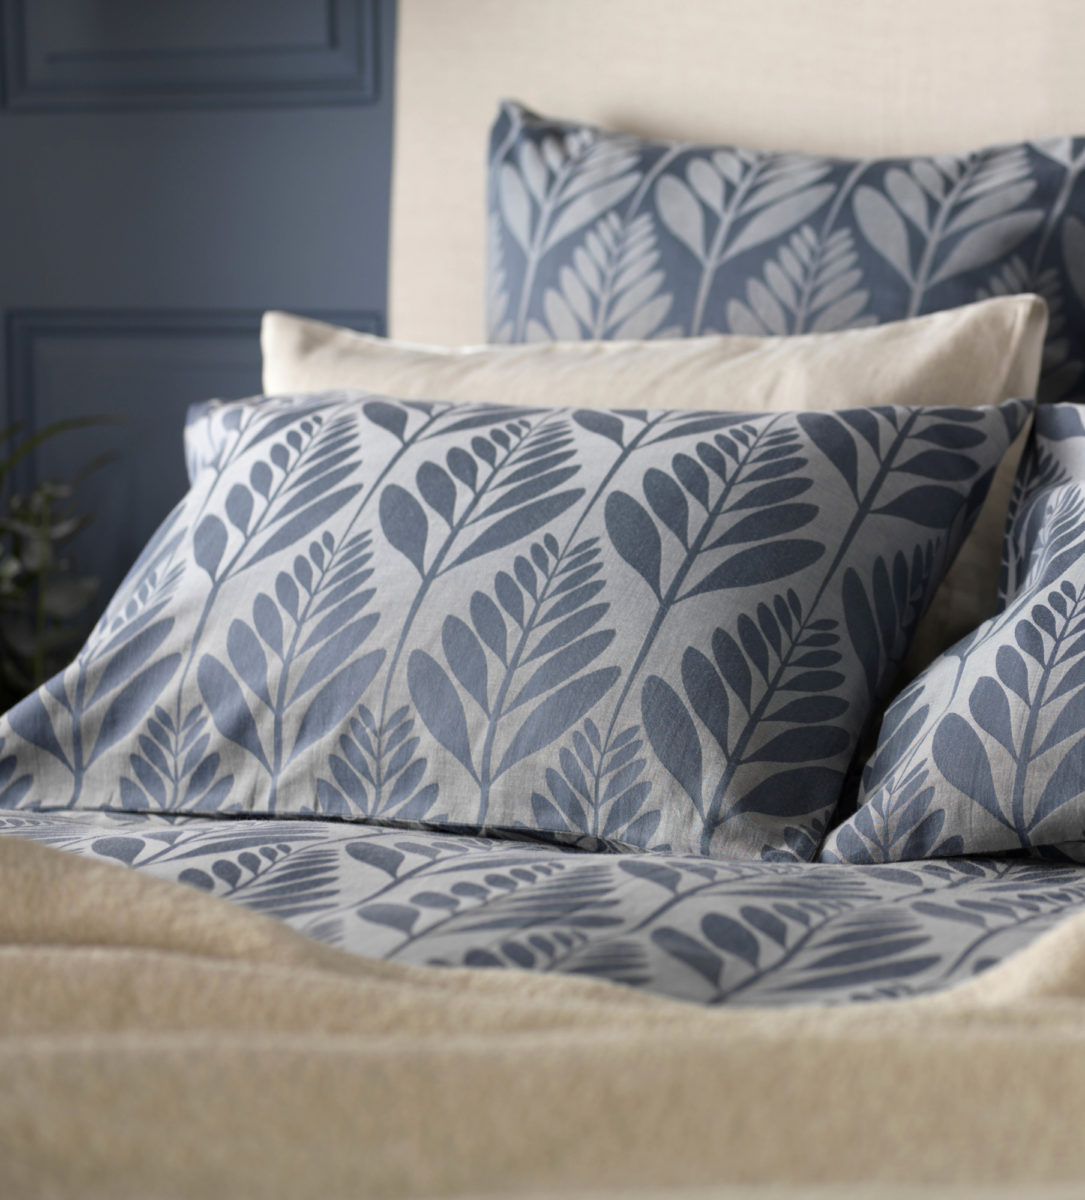 duv sham grey xl grombre duvet products and twin set ombre cover